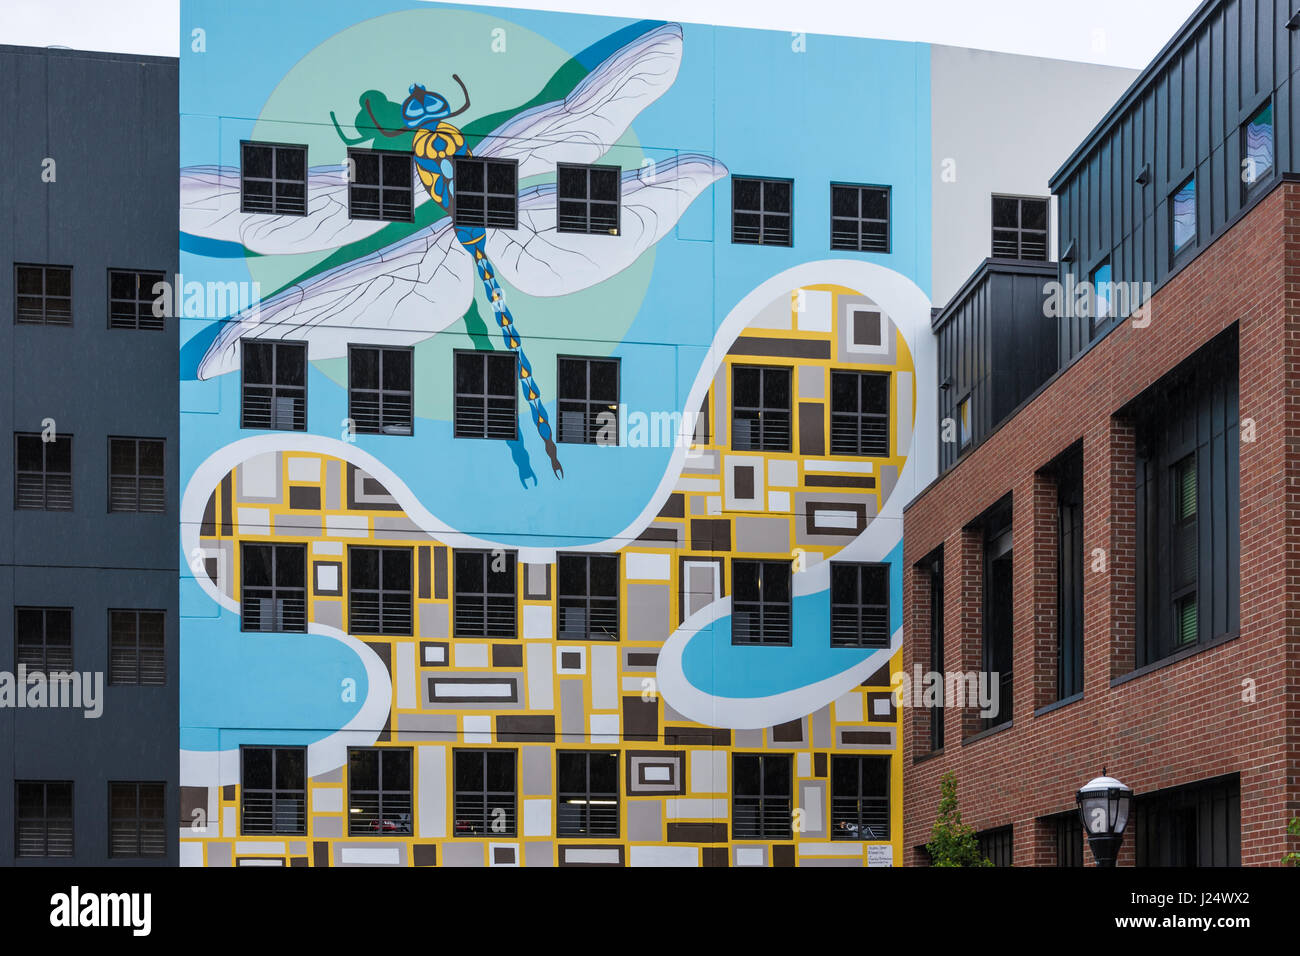 Dragonfly wall mural at The Local on 14th in Midtown Atlanta, Georgia, USA. - Stock Image